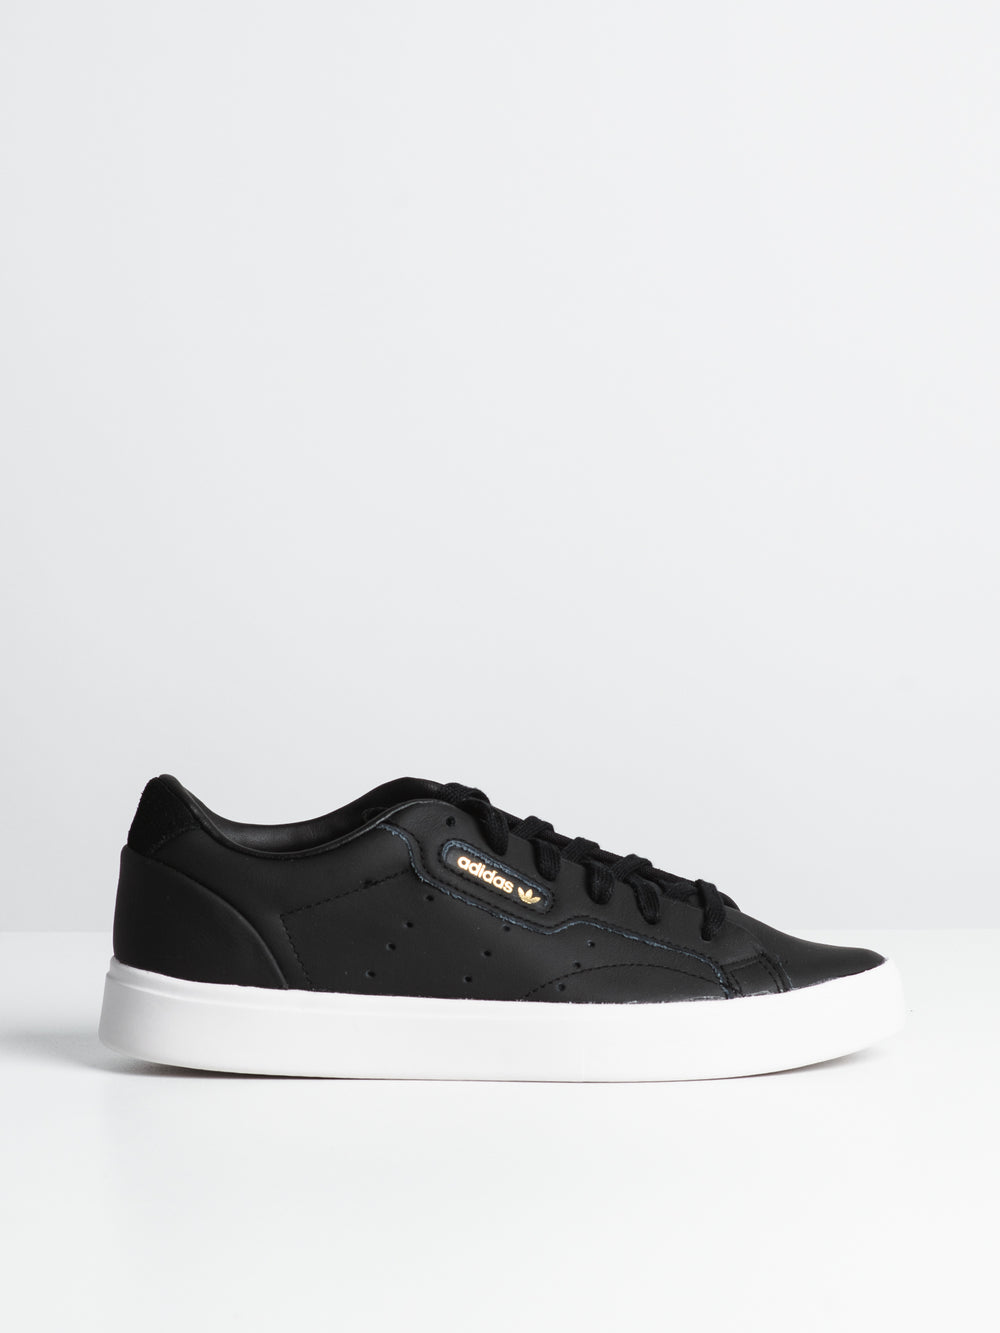 WOMENS SLEEK - BLACK/BLACK/WHITE